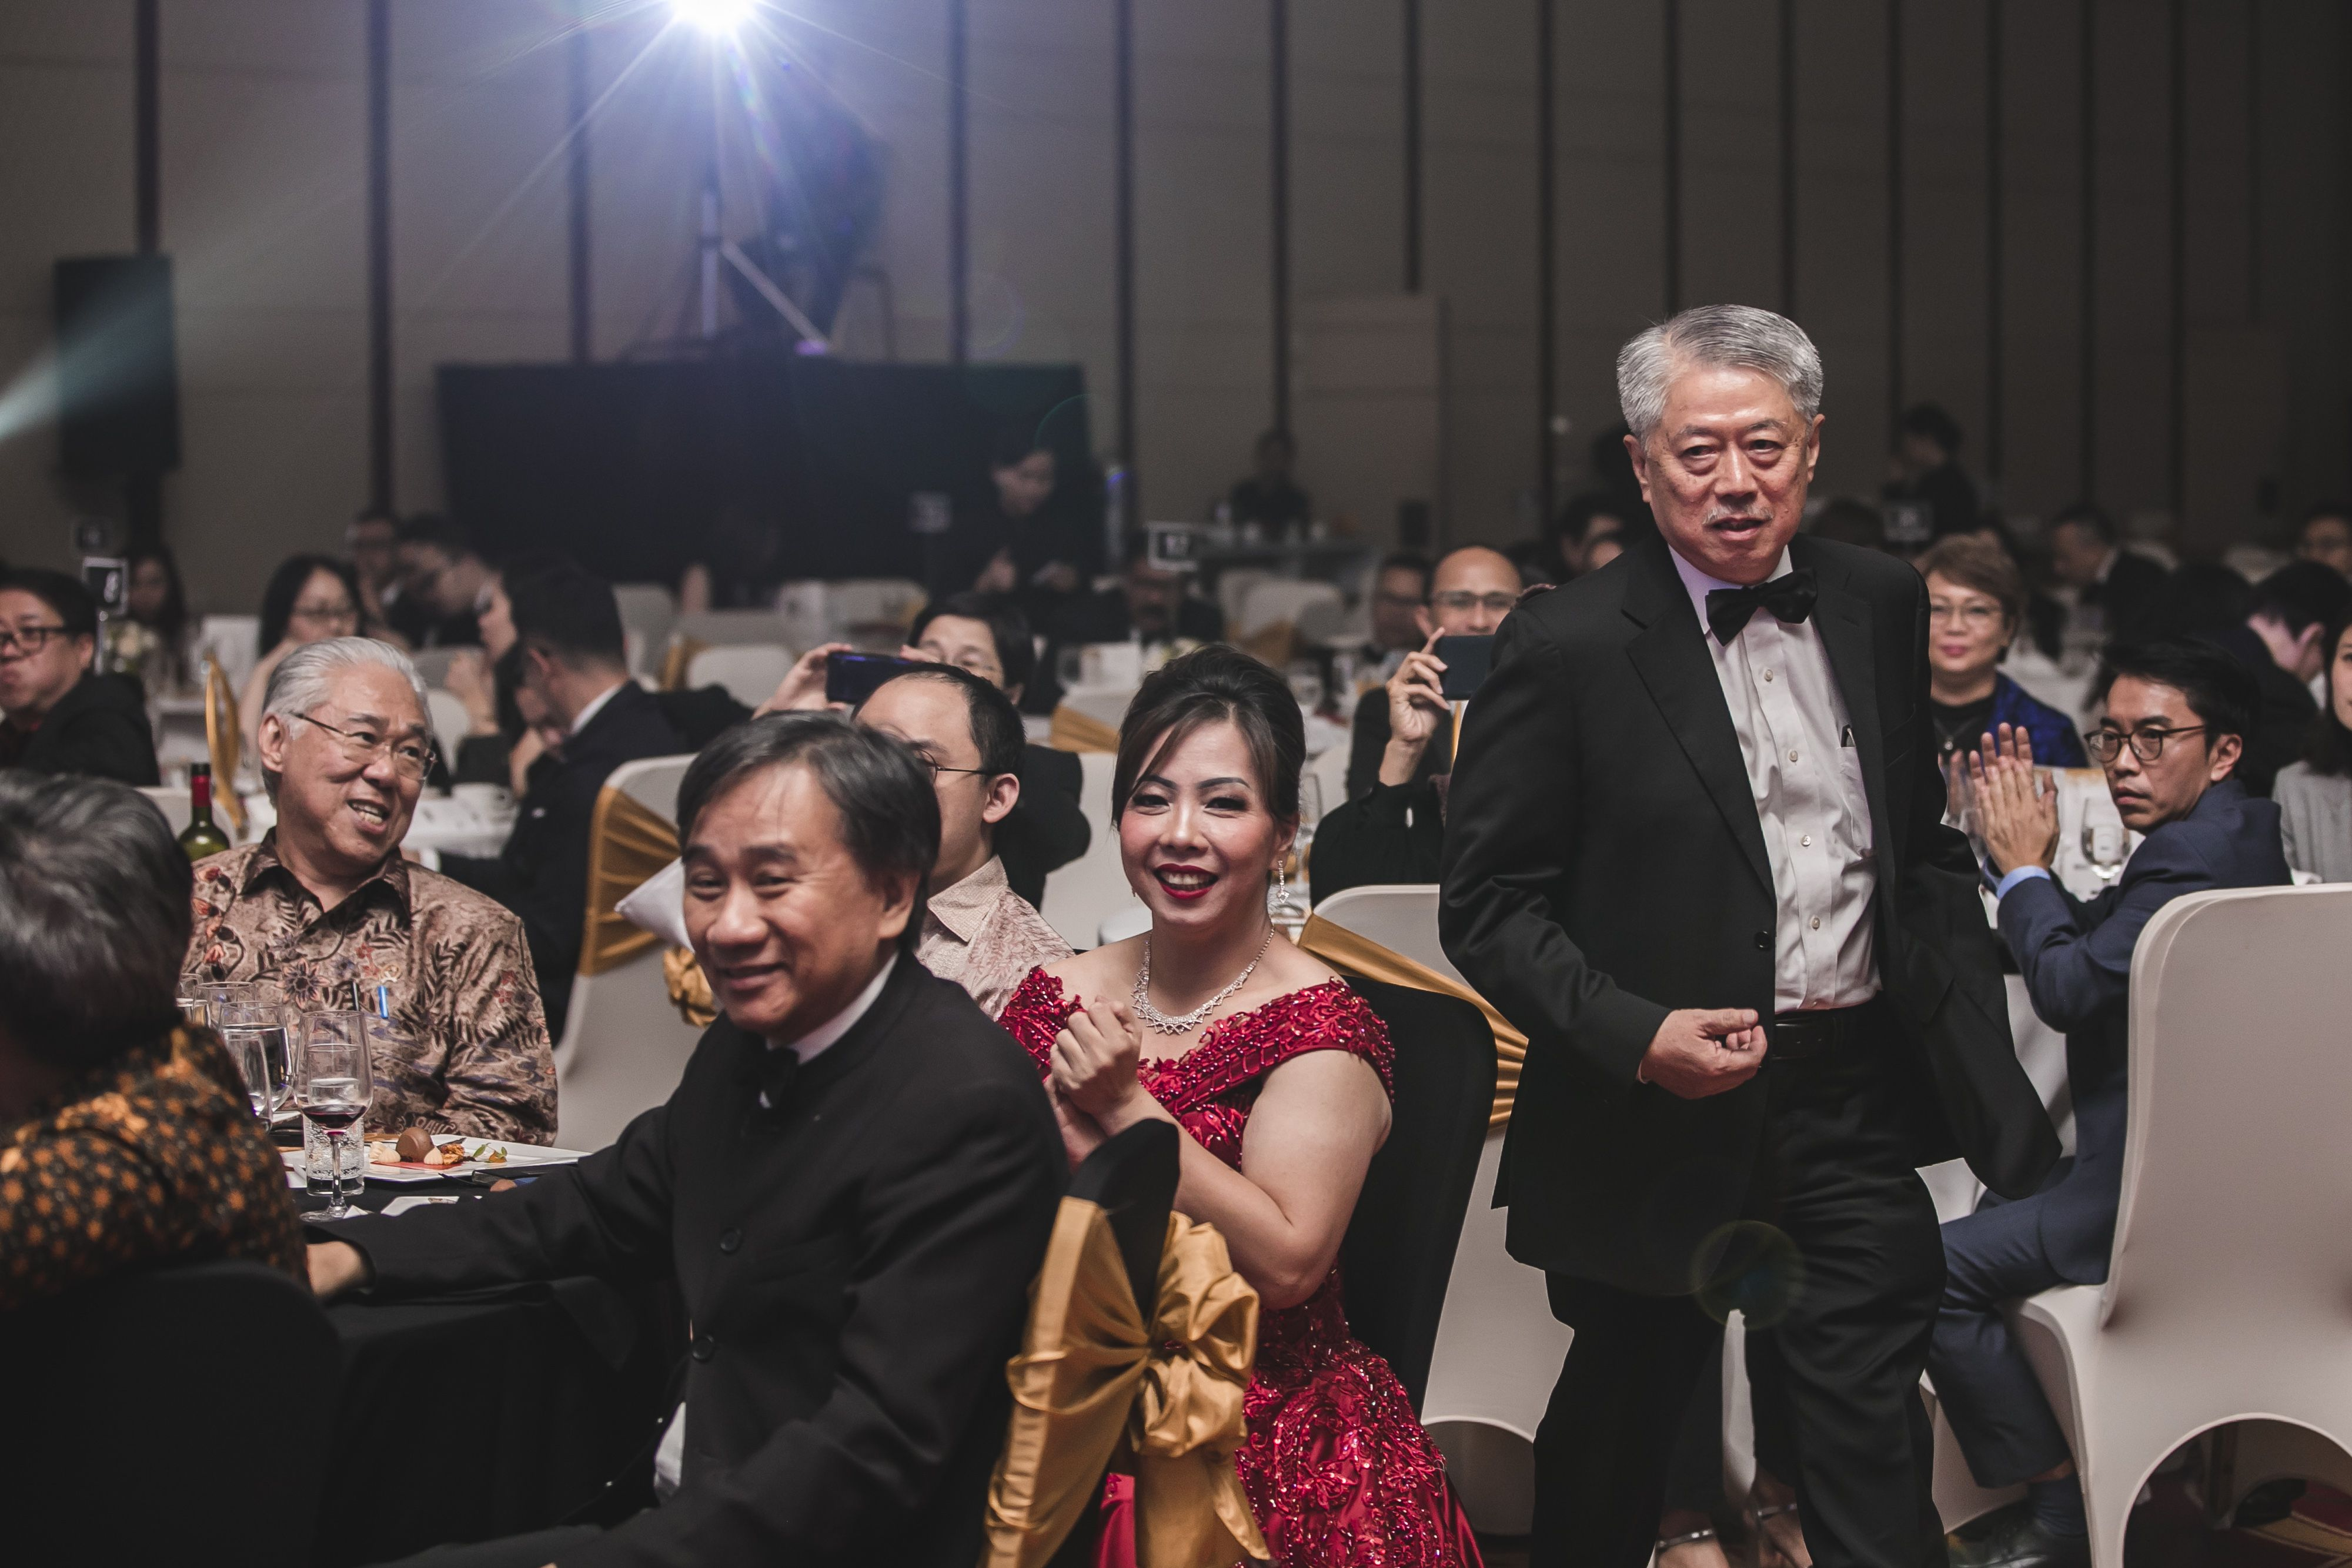 Hendro S. Gondokusumo, founder of PT Intiland Development Tbk, was named Indonesia Real Estate Personality of the Year in 2018